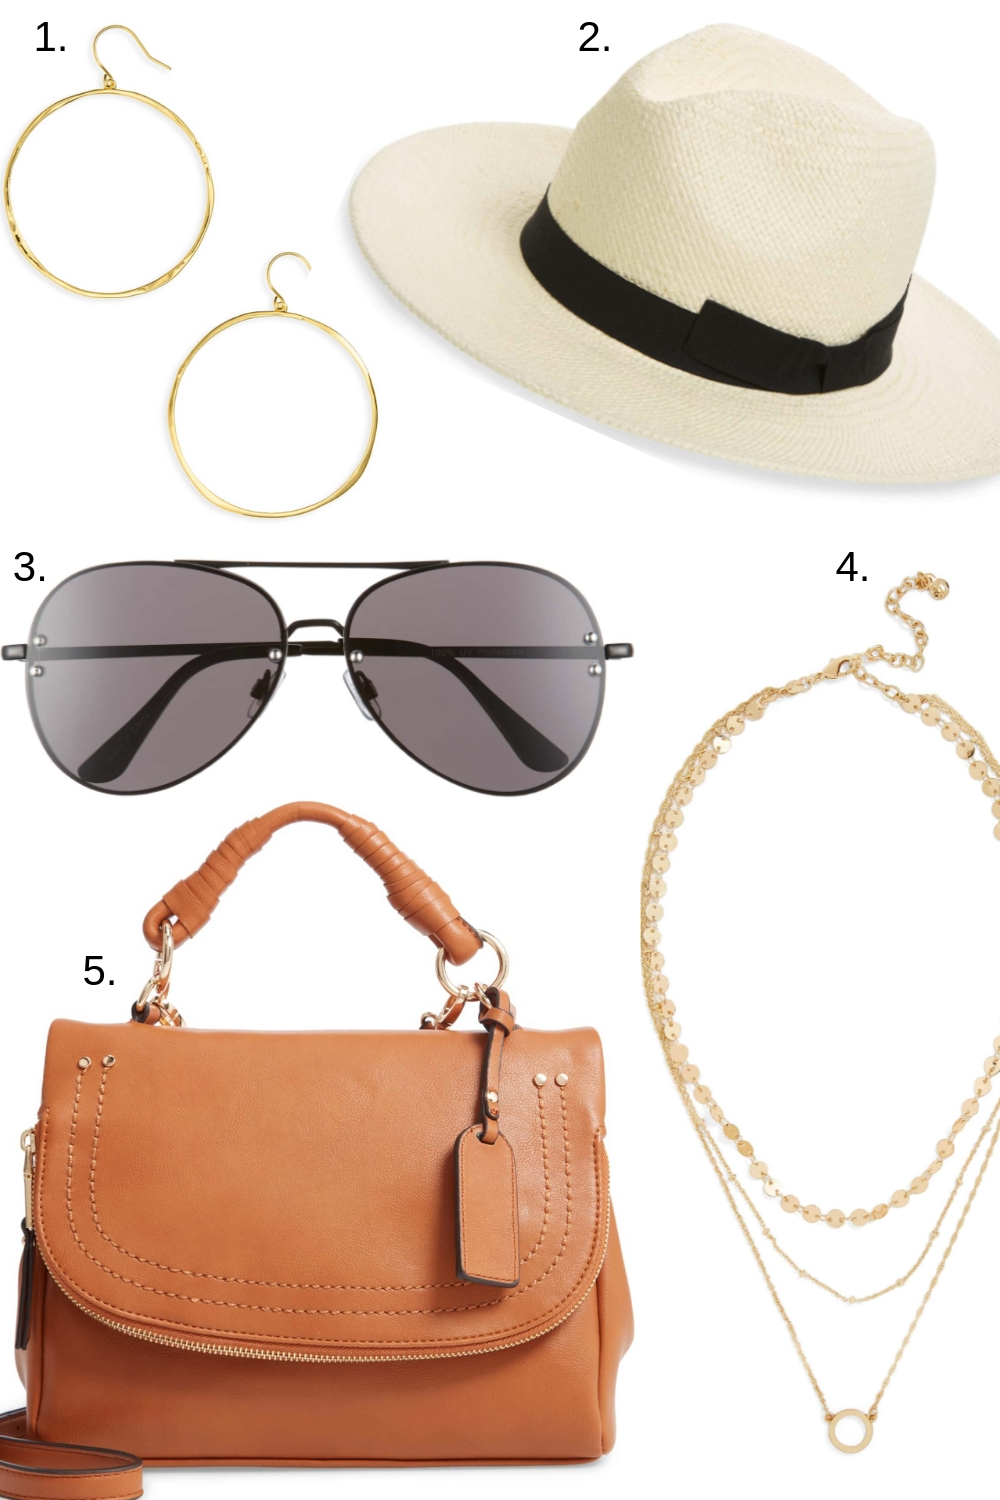 The best accessories for Spring | Style Your Senses